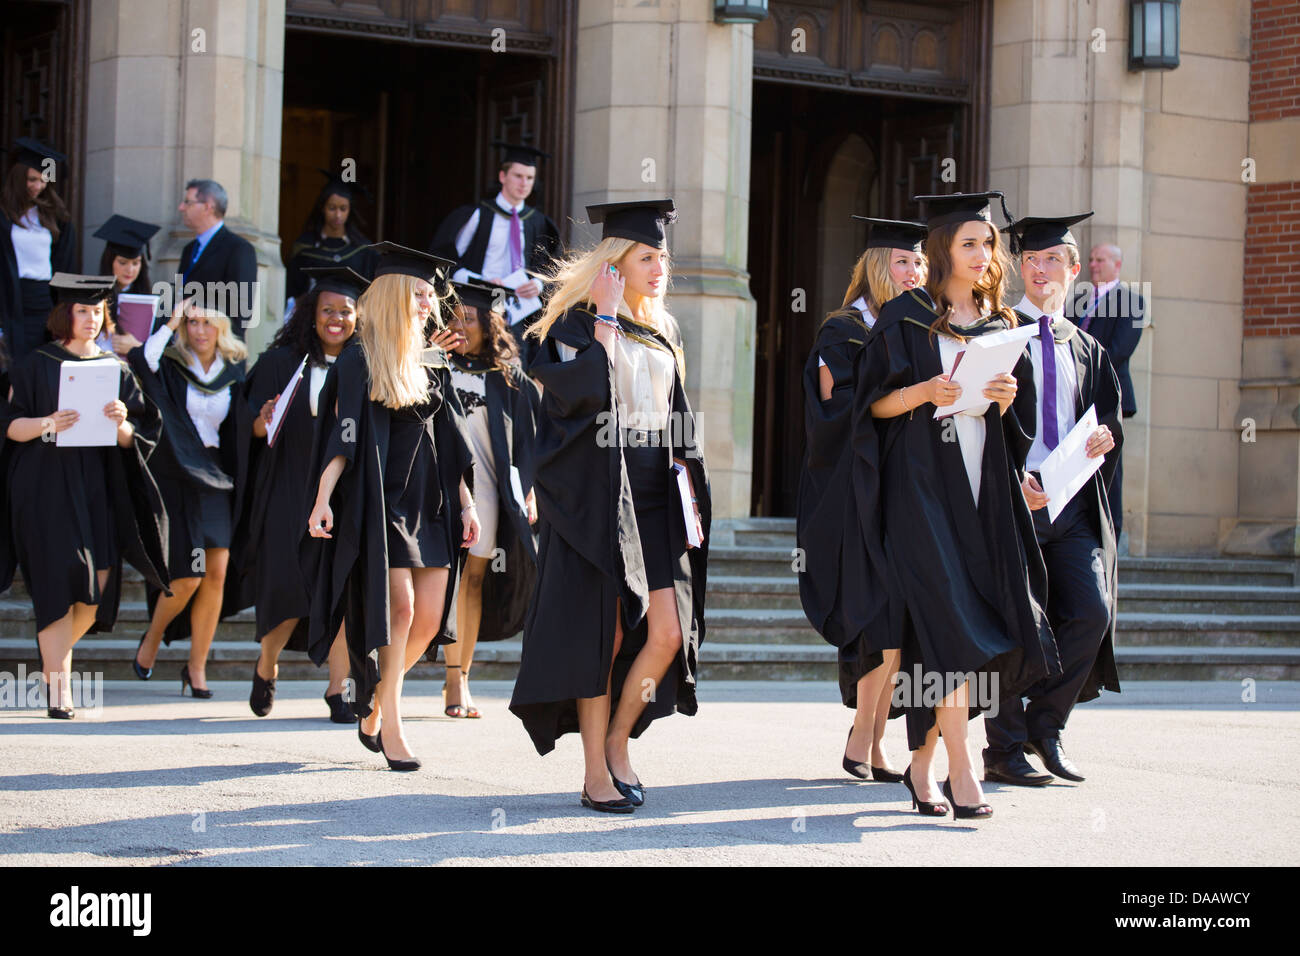 Graduates leaving the Great Hall at Birmingham University, UK, after the graduation ceremony - Stock Image